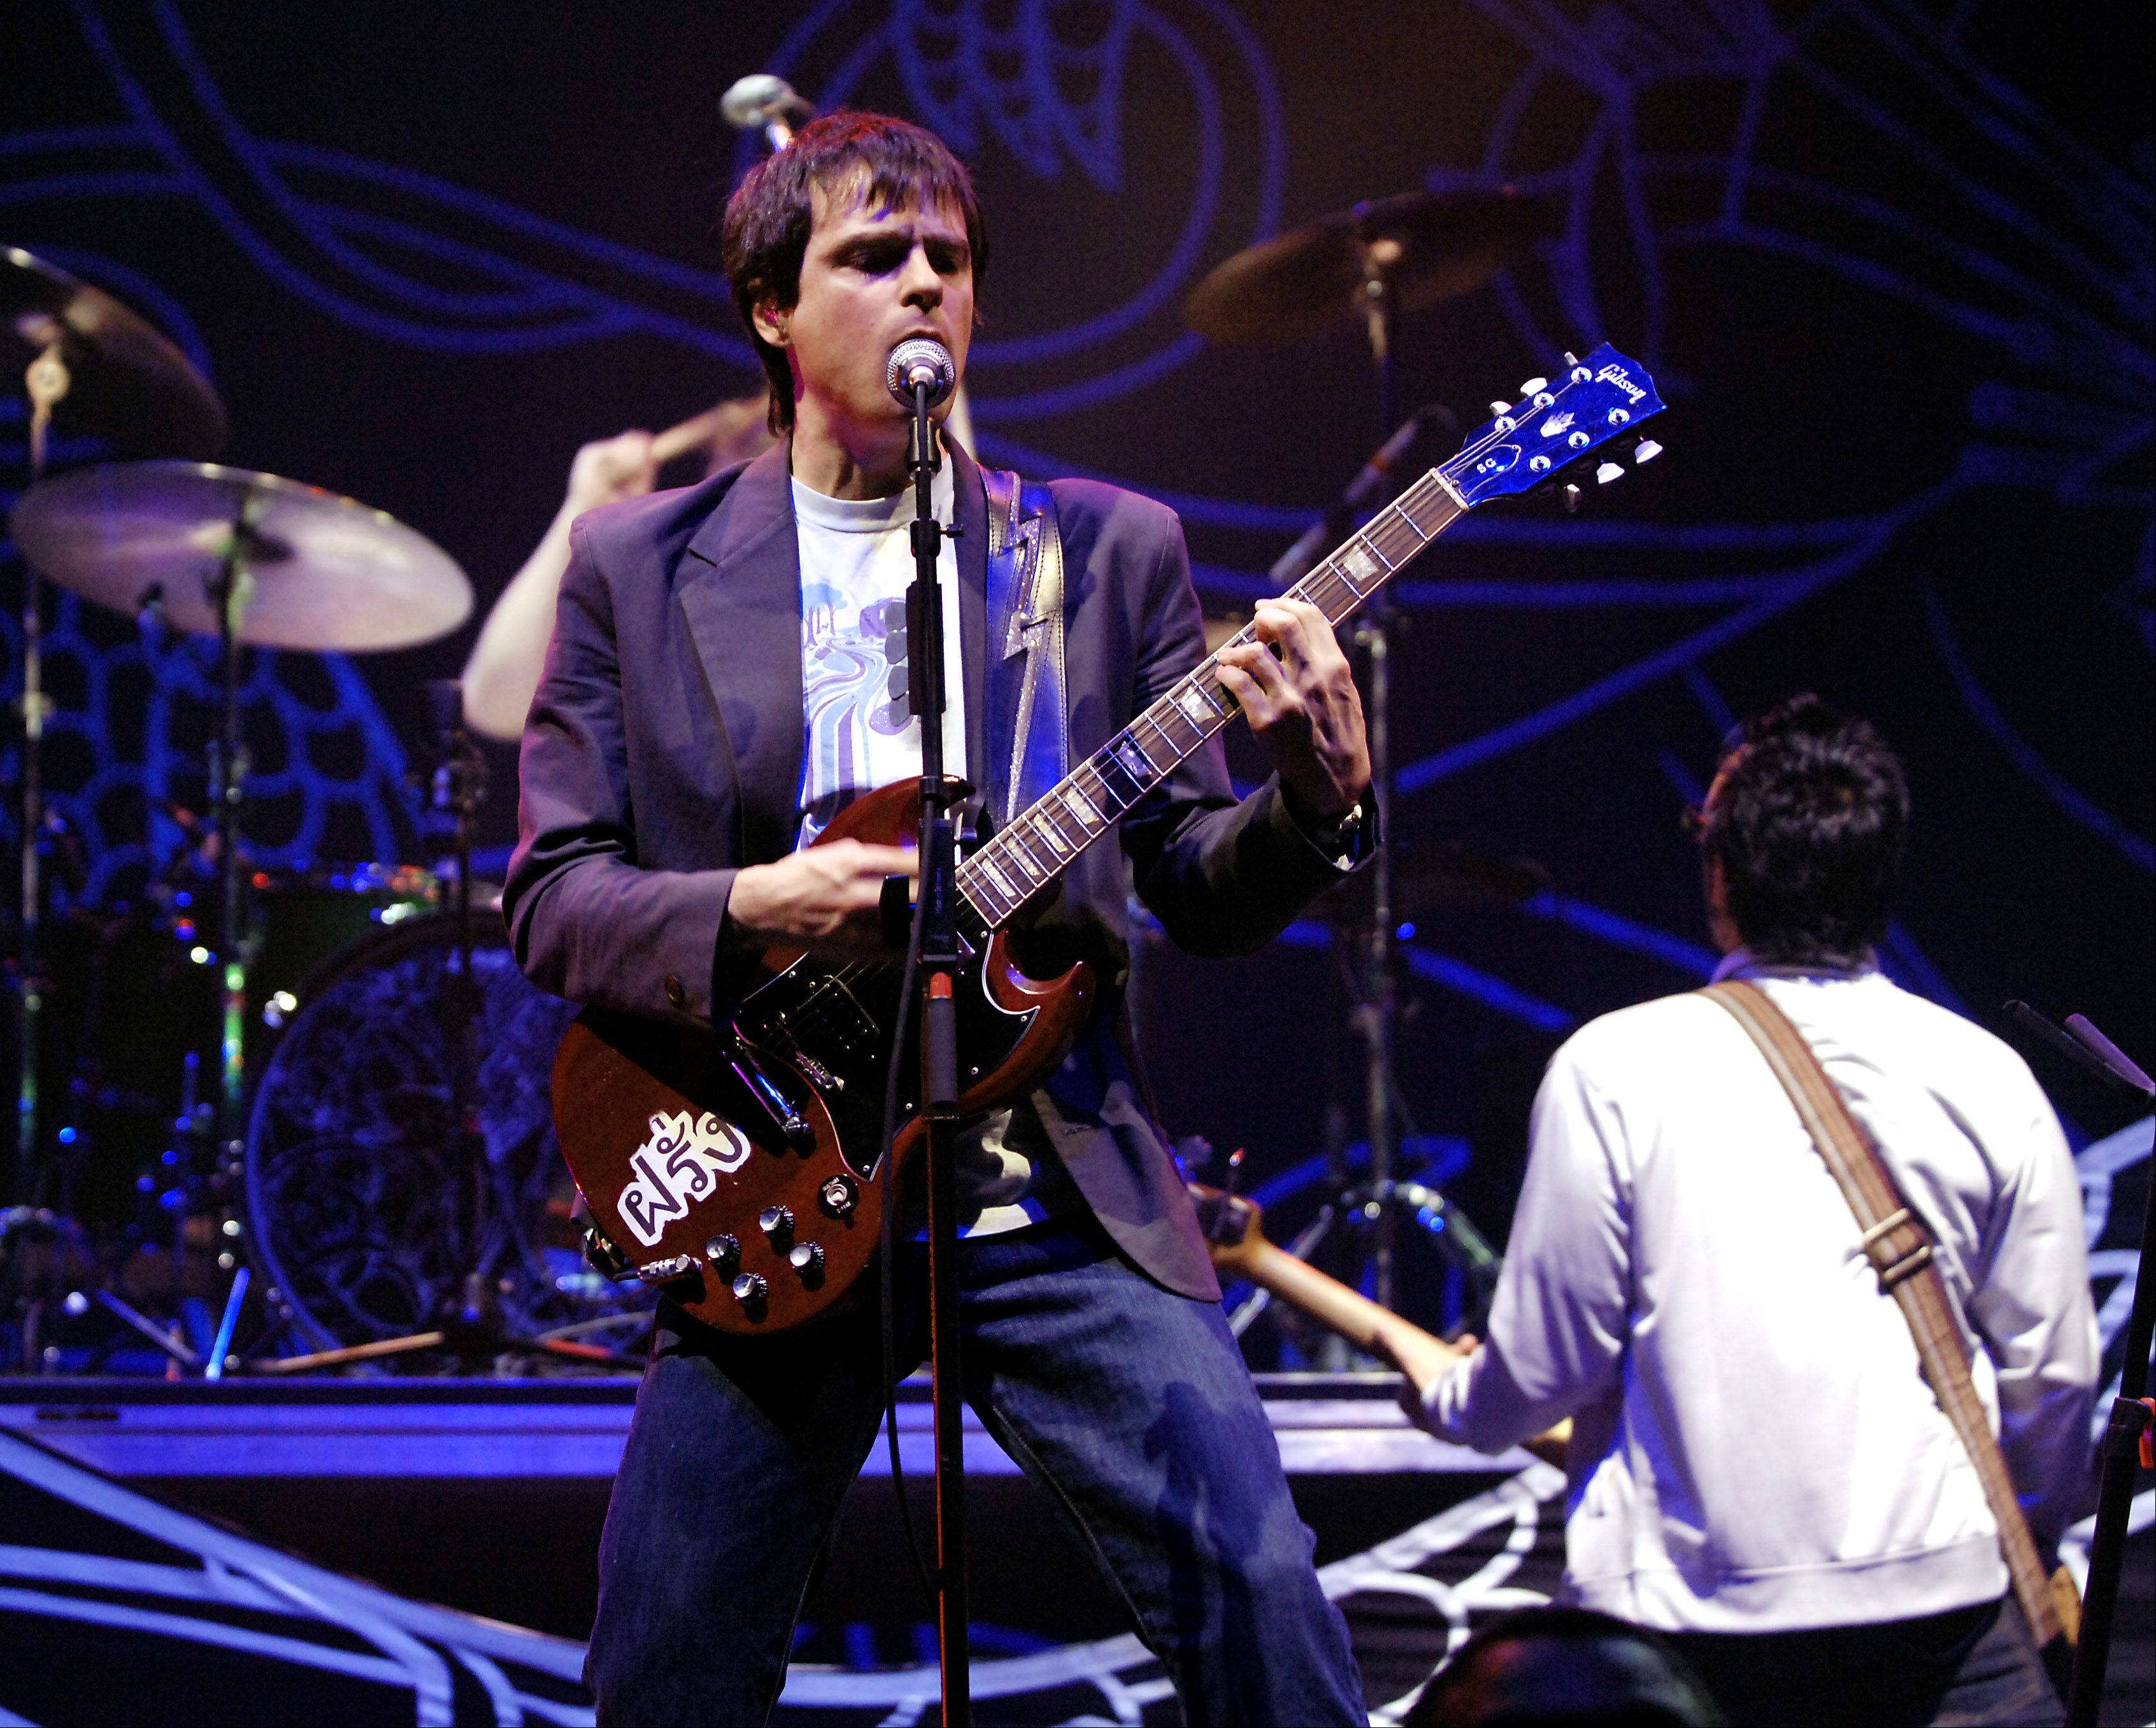 Rivers Cuomo and Weezer, seen here in 2005 at Allstate Arena, will play a free concert June 22 at Woodfield Mall.